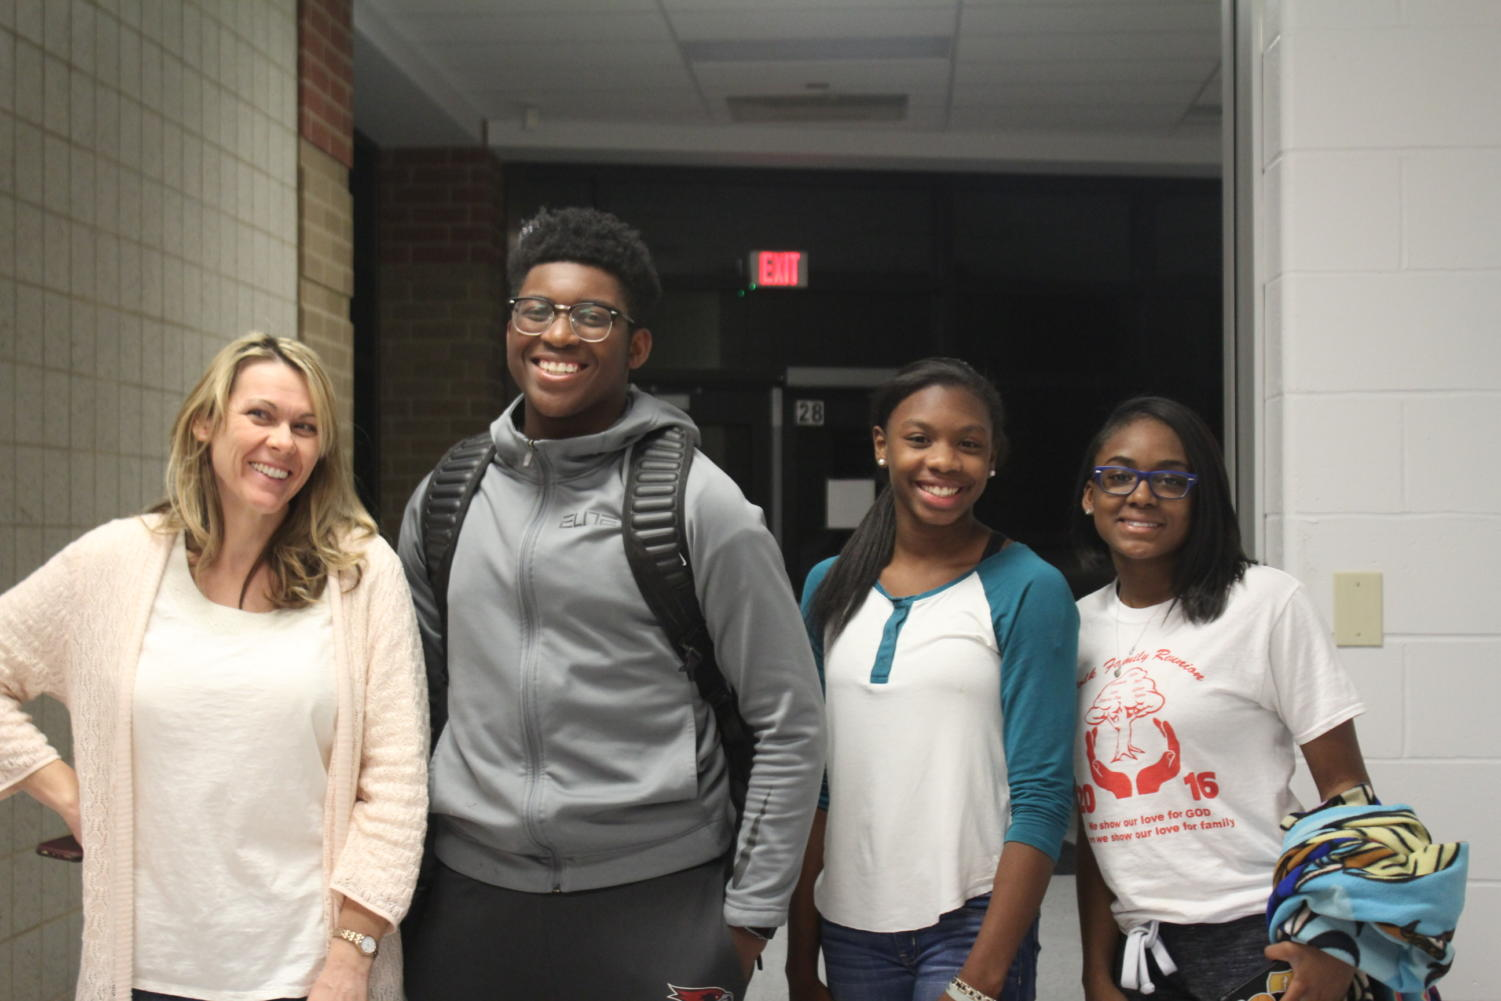 (From left to right) Diversity Club sponsor Ms. Borders, Club president junior Tai Williams, freshman Karlie Wooten and freshman Le'Shay Watkins.